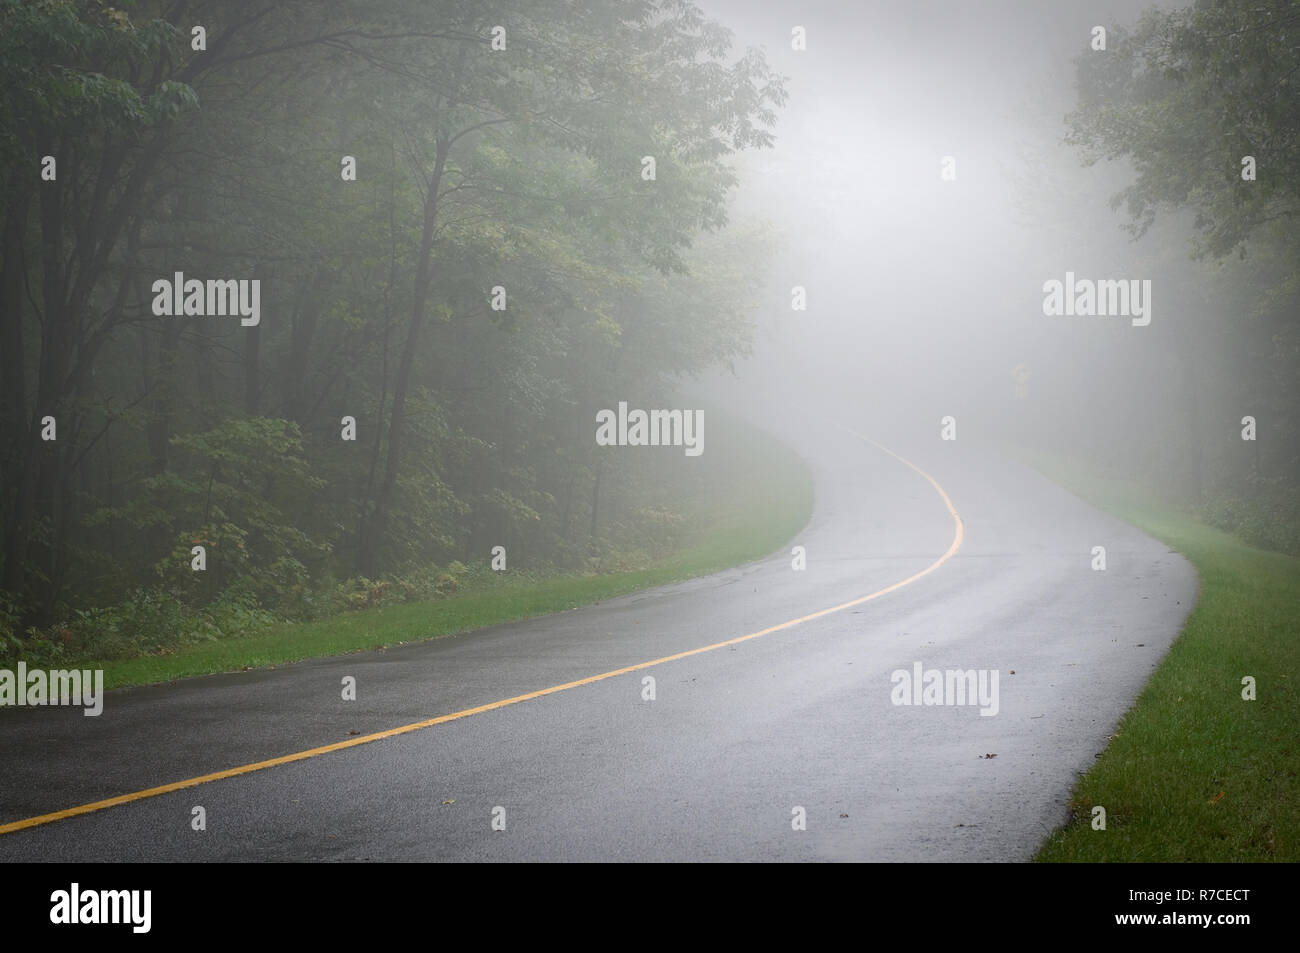 Curved Road in a Green Summer Forest with Fog - Stock Image